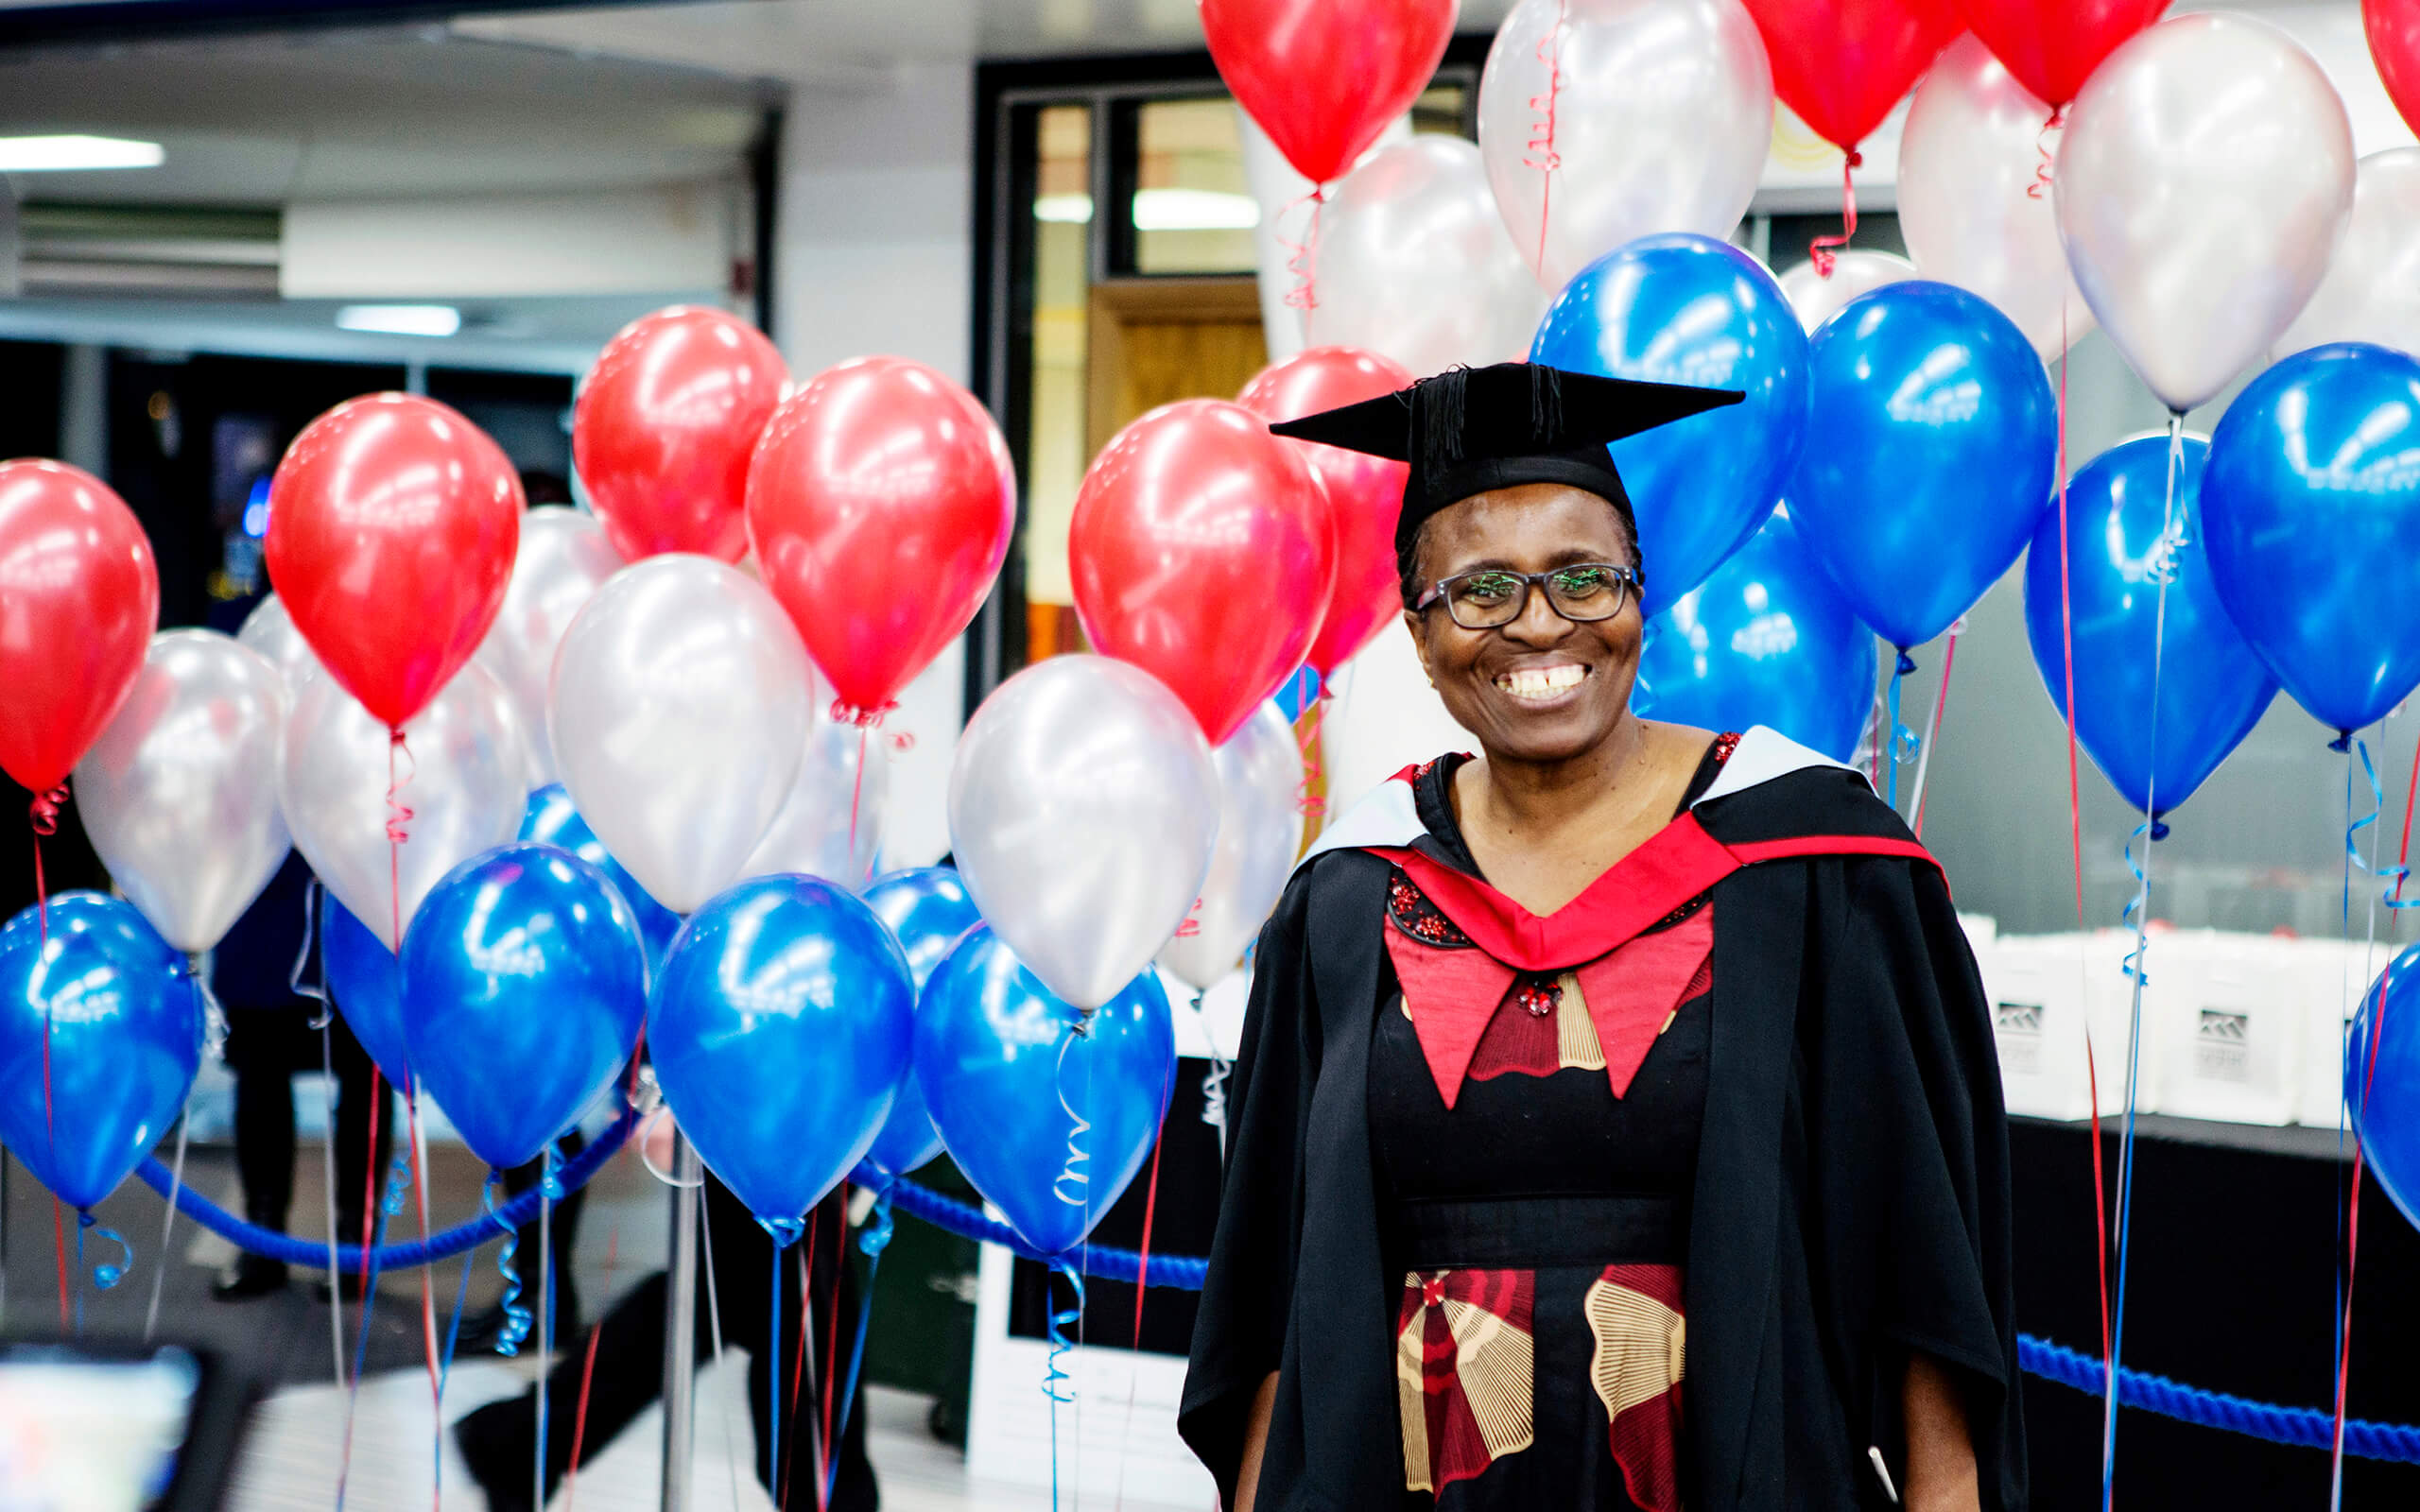 Online student Thobekile Ncube stood at her graduation reception in front of balloons.